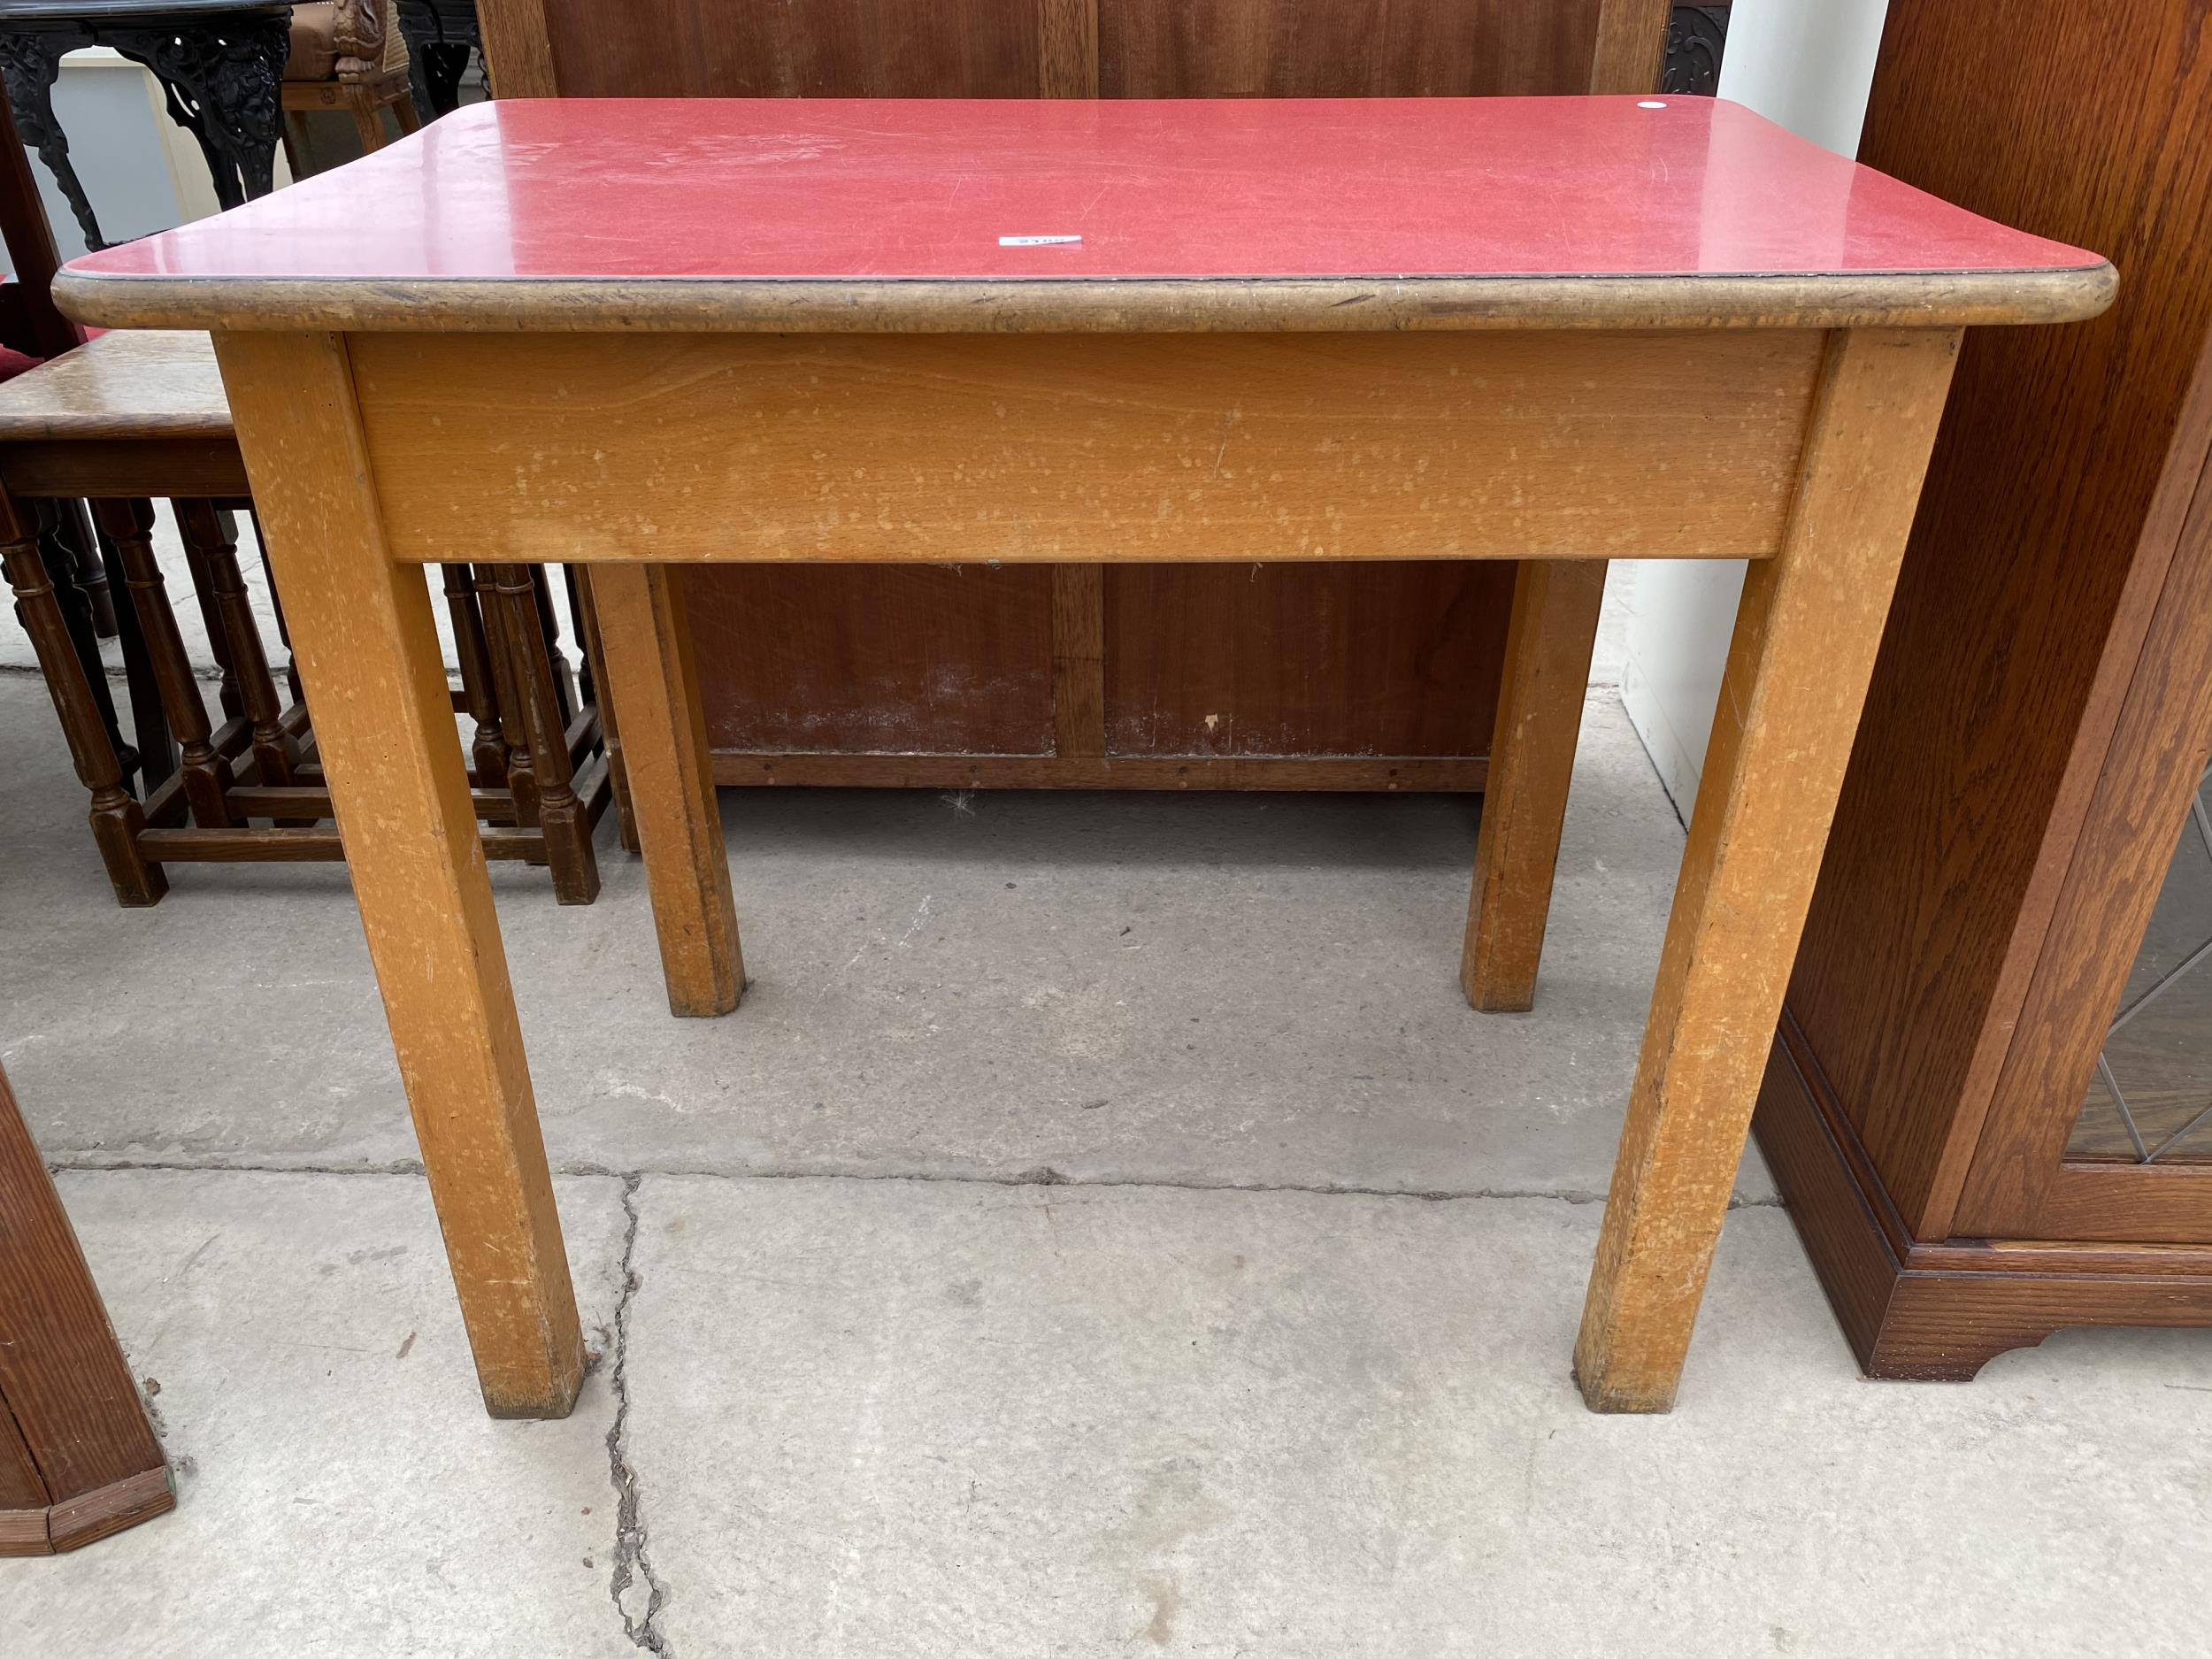 """A 1950'S FORMICA TOP TABLE 35""""X22.5"""" - Image 2 of 2"""